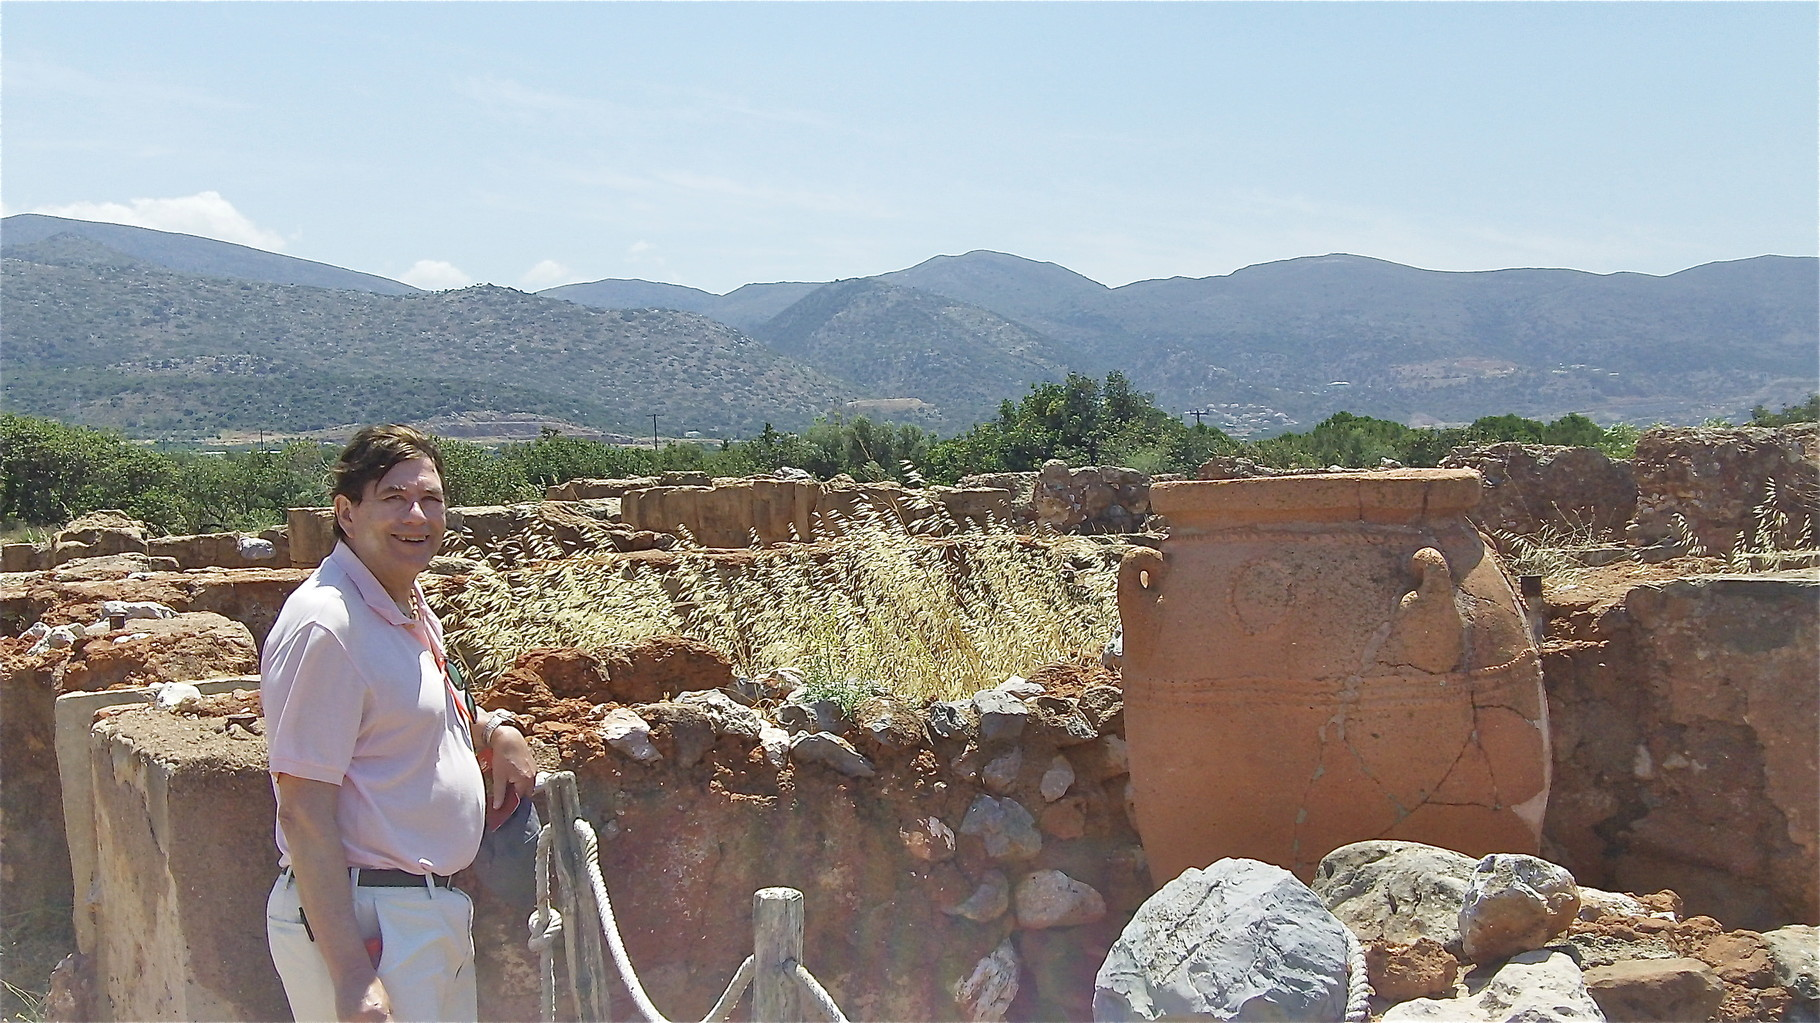 John at the ruins of the Minoan Palace at Malia